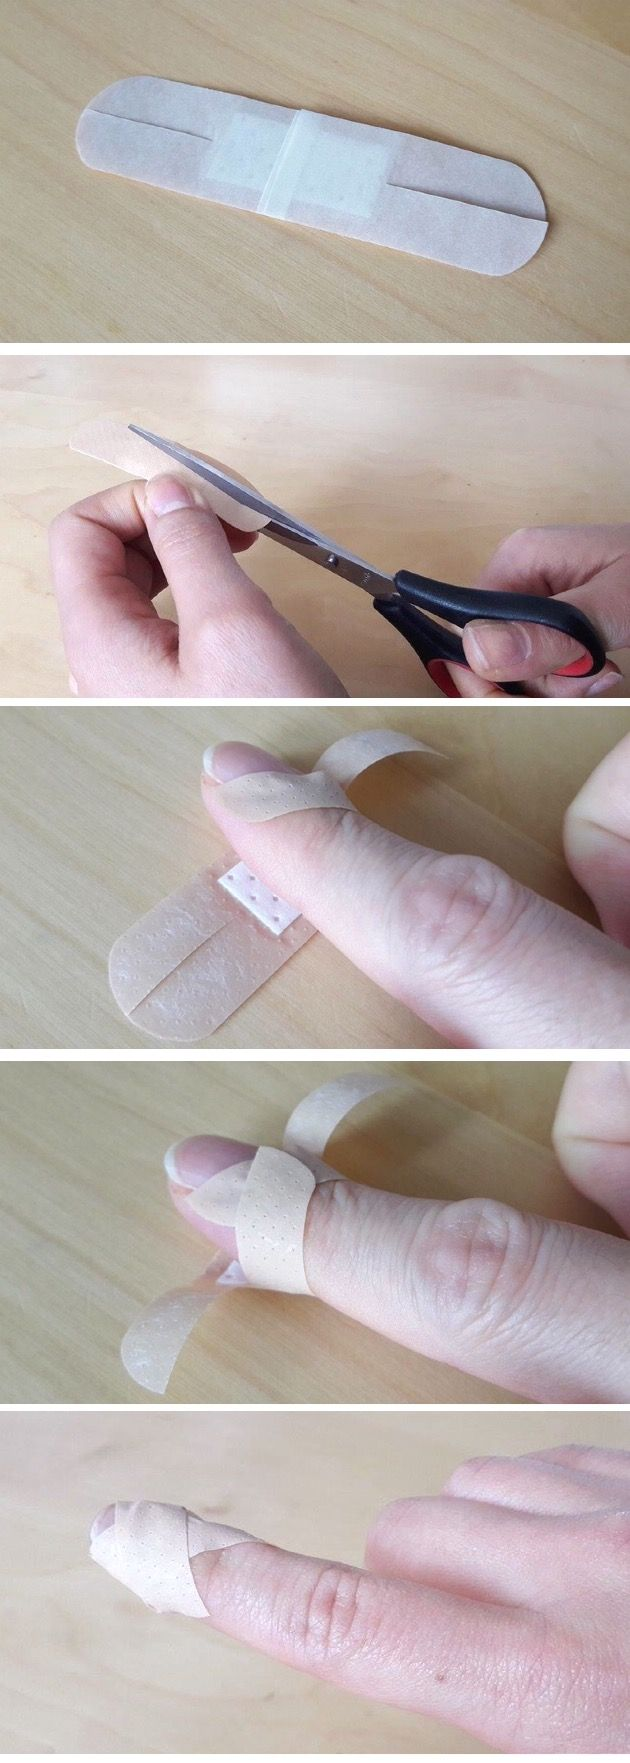 The Only Way You'll Ever Put A Band-Aid On Your Fingertip Again Read more at http://www.sunnyskyz.com/blog/2019/The-Only-Way-You-ll-Ever-Put-A-Band-Aid-On-Your-Fingertip-Again#9IHk5QgShWC7eqso.99